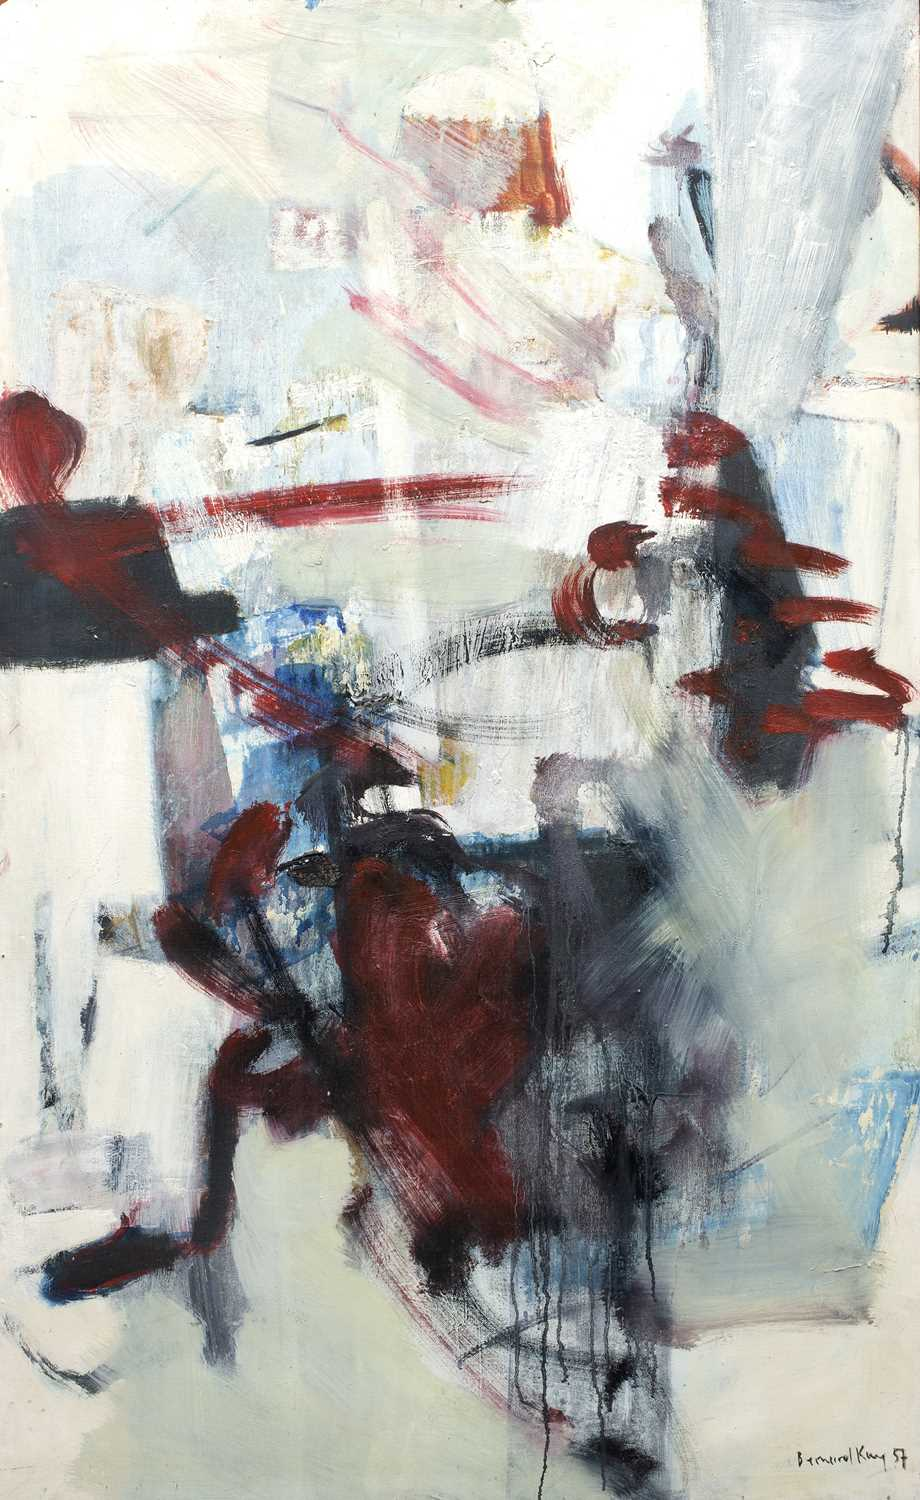 Bernard Kay (1927-2021) Linear Red on White, 1957 signed, dated, and titled (to reverse) oil on